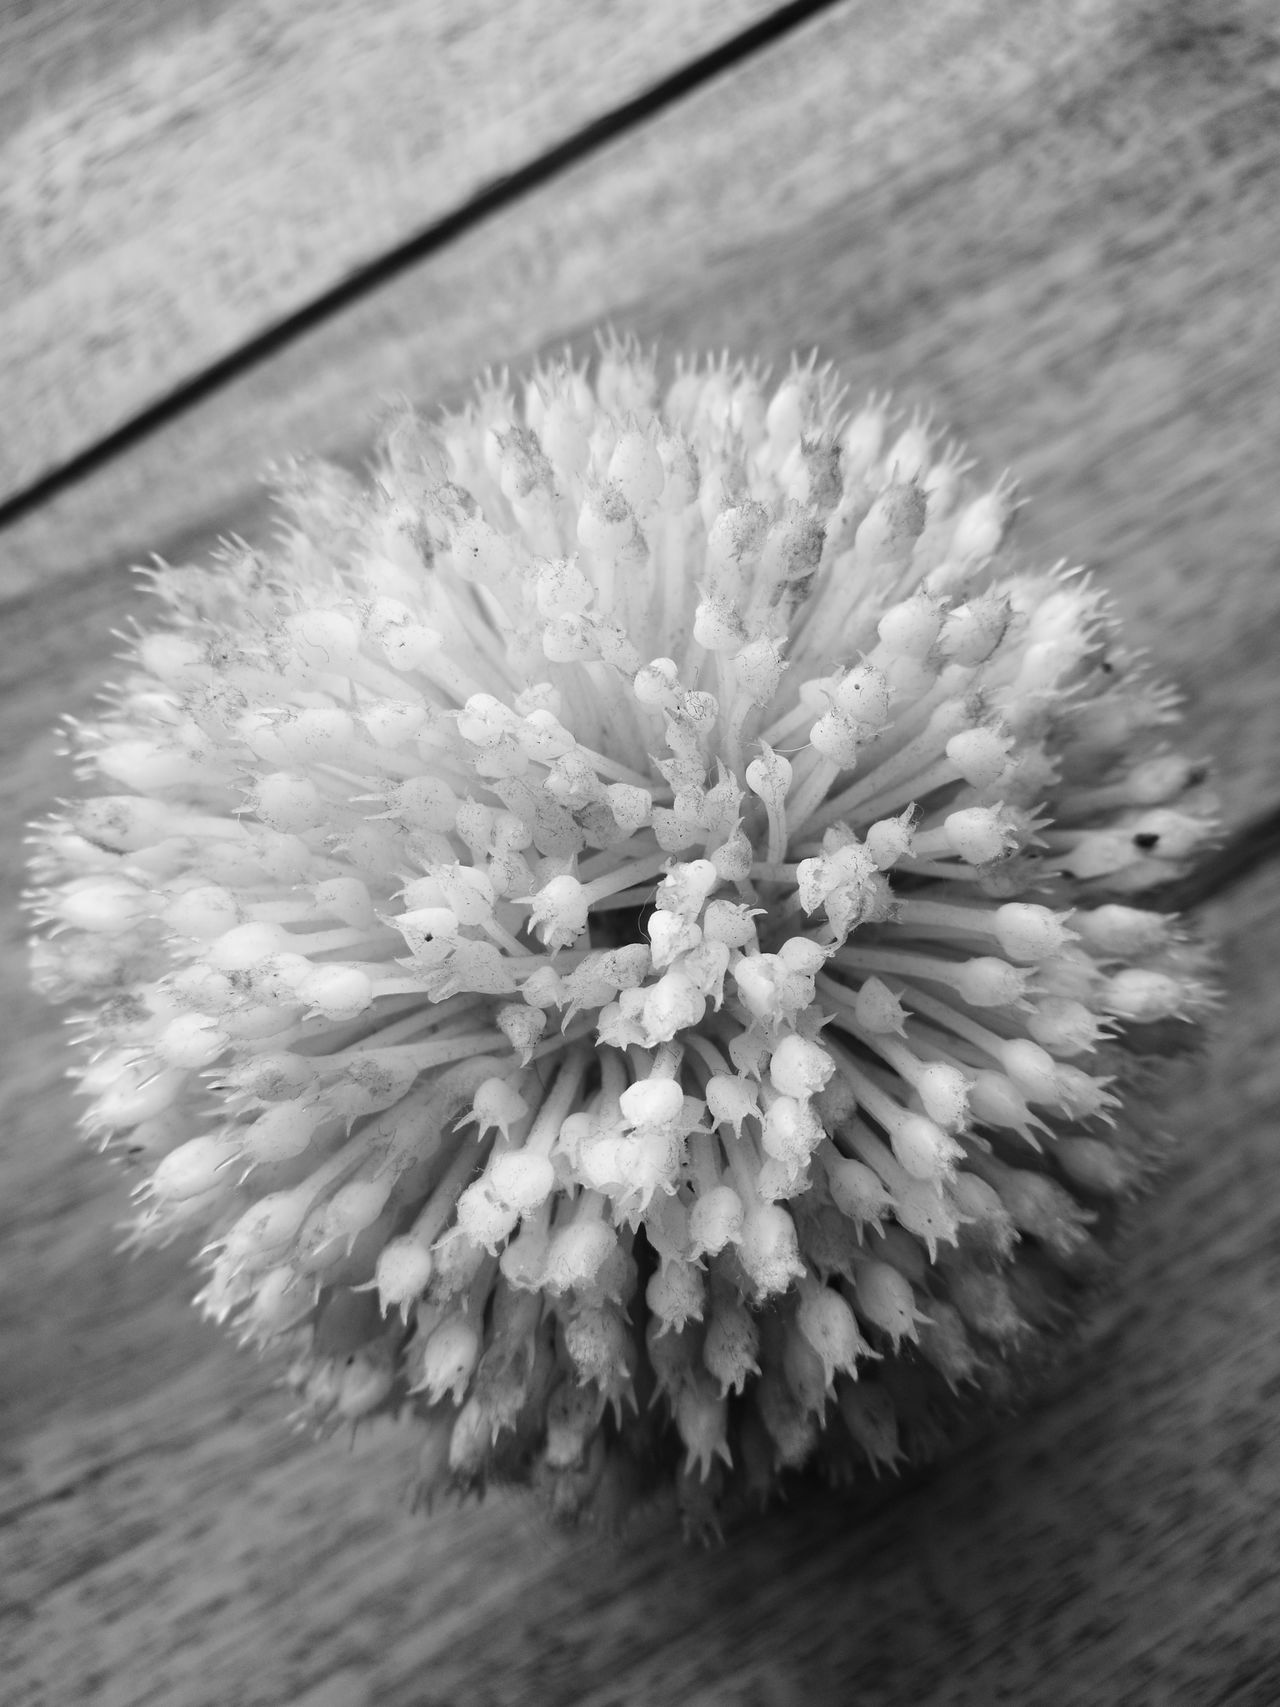 Nature Close-up Fragility No People Plant Outdoors Day Beauty In Nature Growth Freshness Flower Flower Head Cactus Nature Black & White Blackandwhite Black And White EyeEm Best Shots EyeEm Thailand EyeEmBestPics